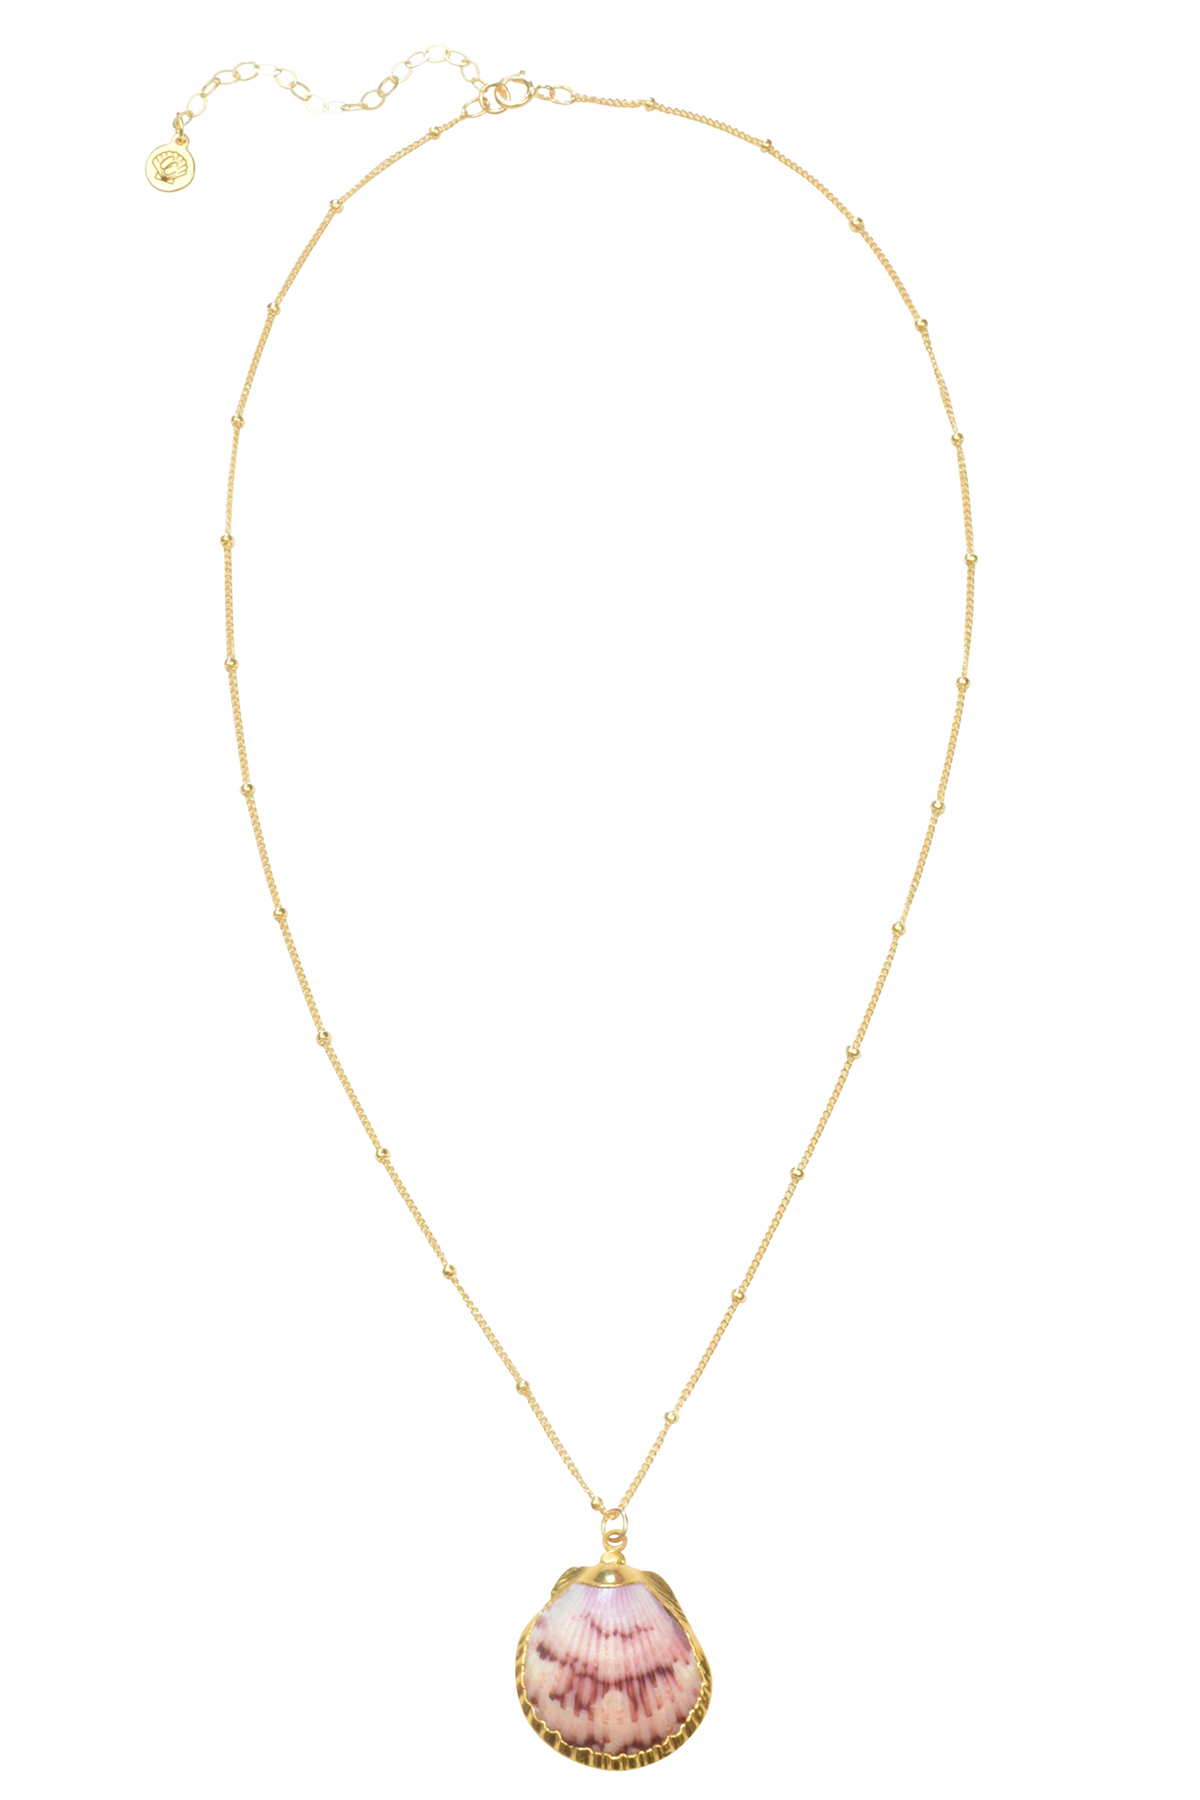 Inspire Seashell Necklace - Gold 1